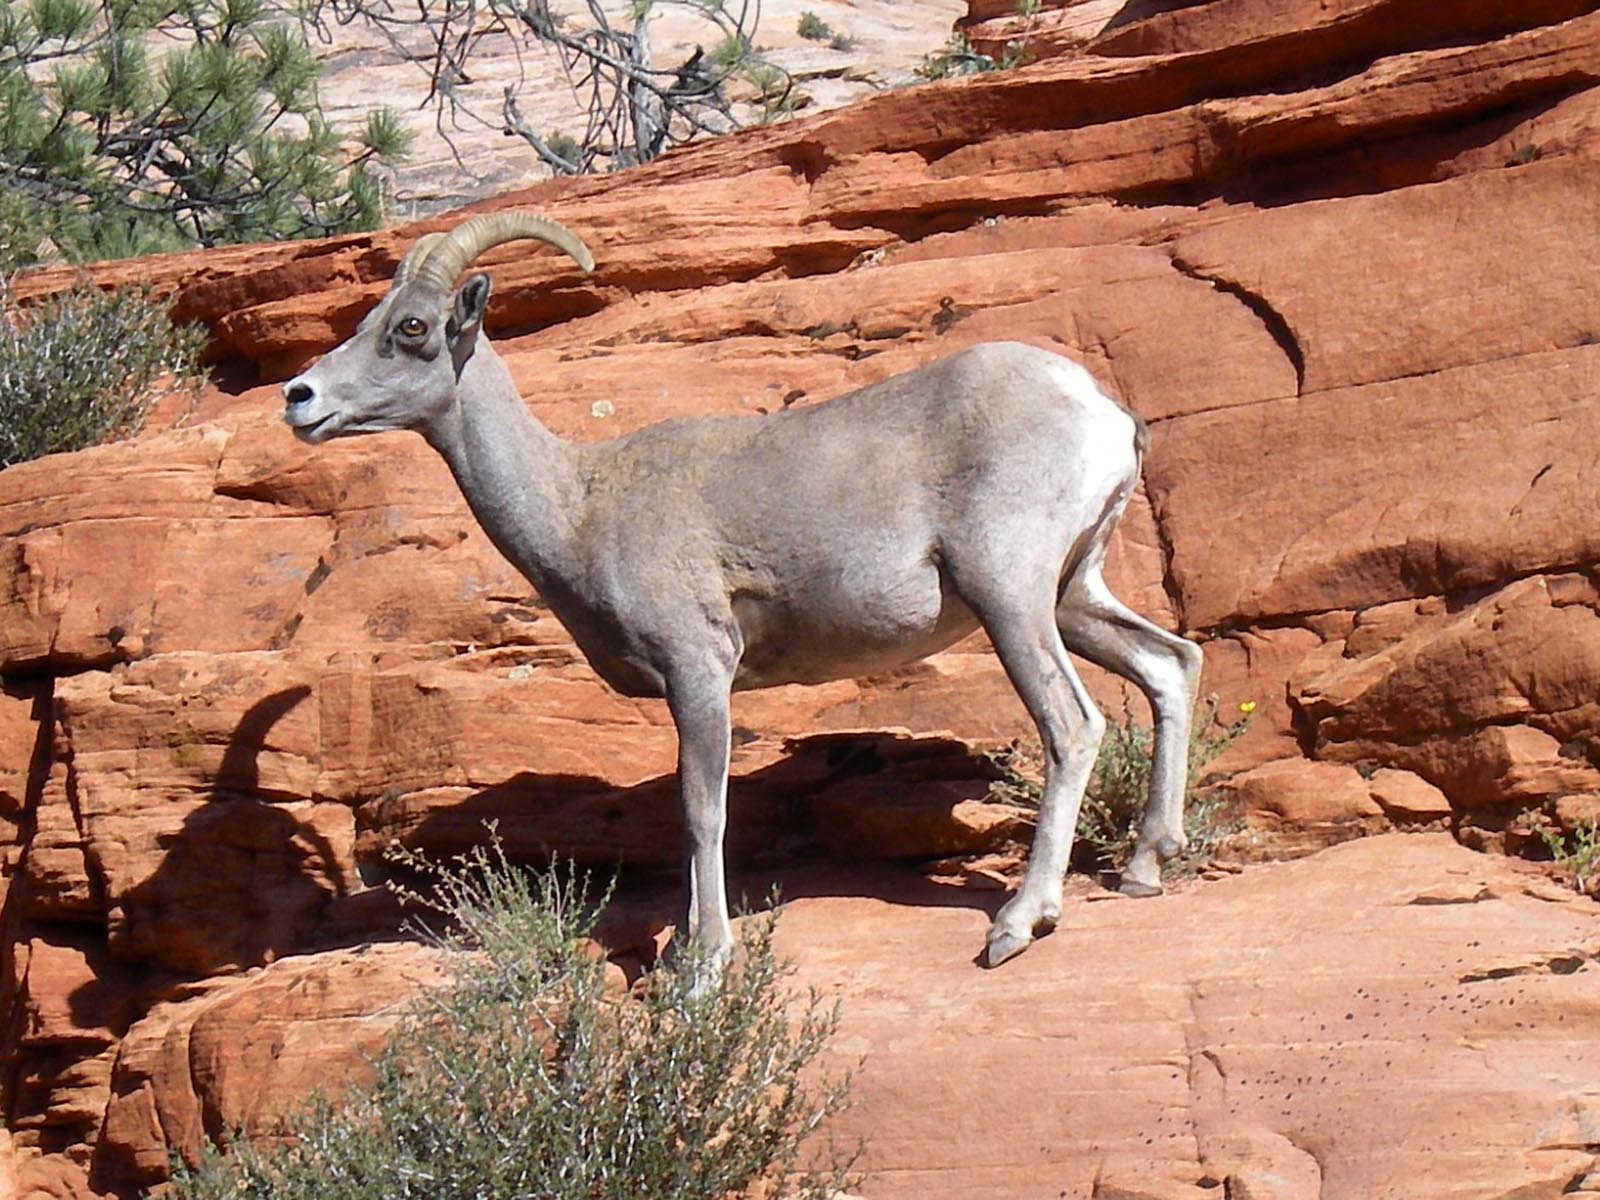 Desert Bighorn Sheep, Zion National Park, Utah | Photo Credit: Katie Raney, NPS